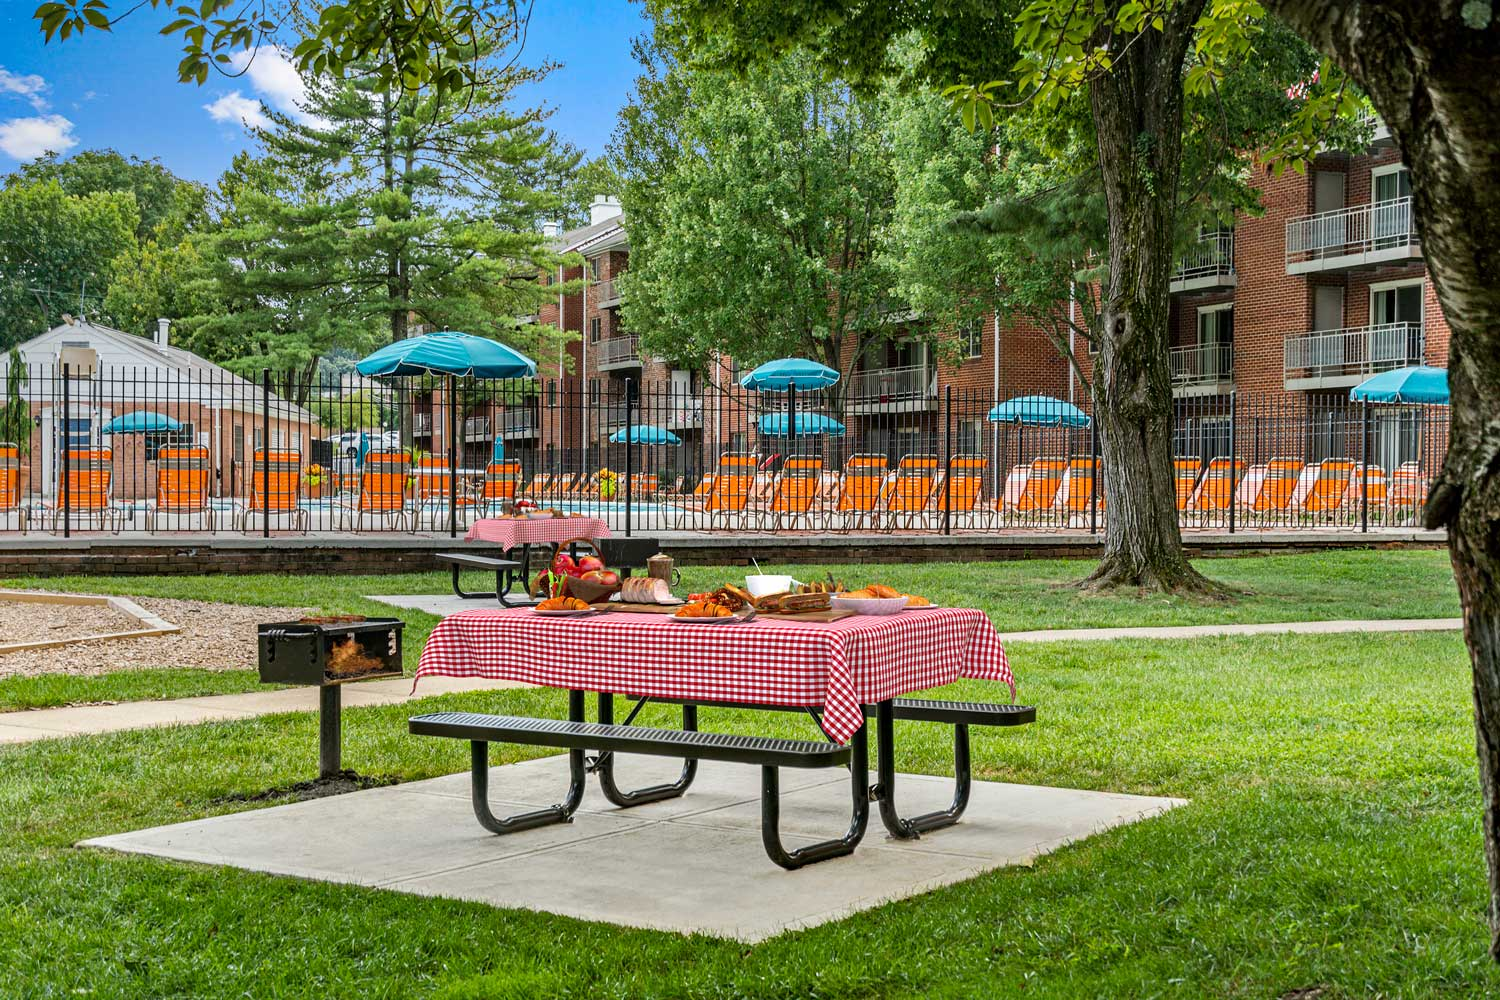 Picnic area with grills at Village Square West Apartments in North Bethesda, MD